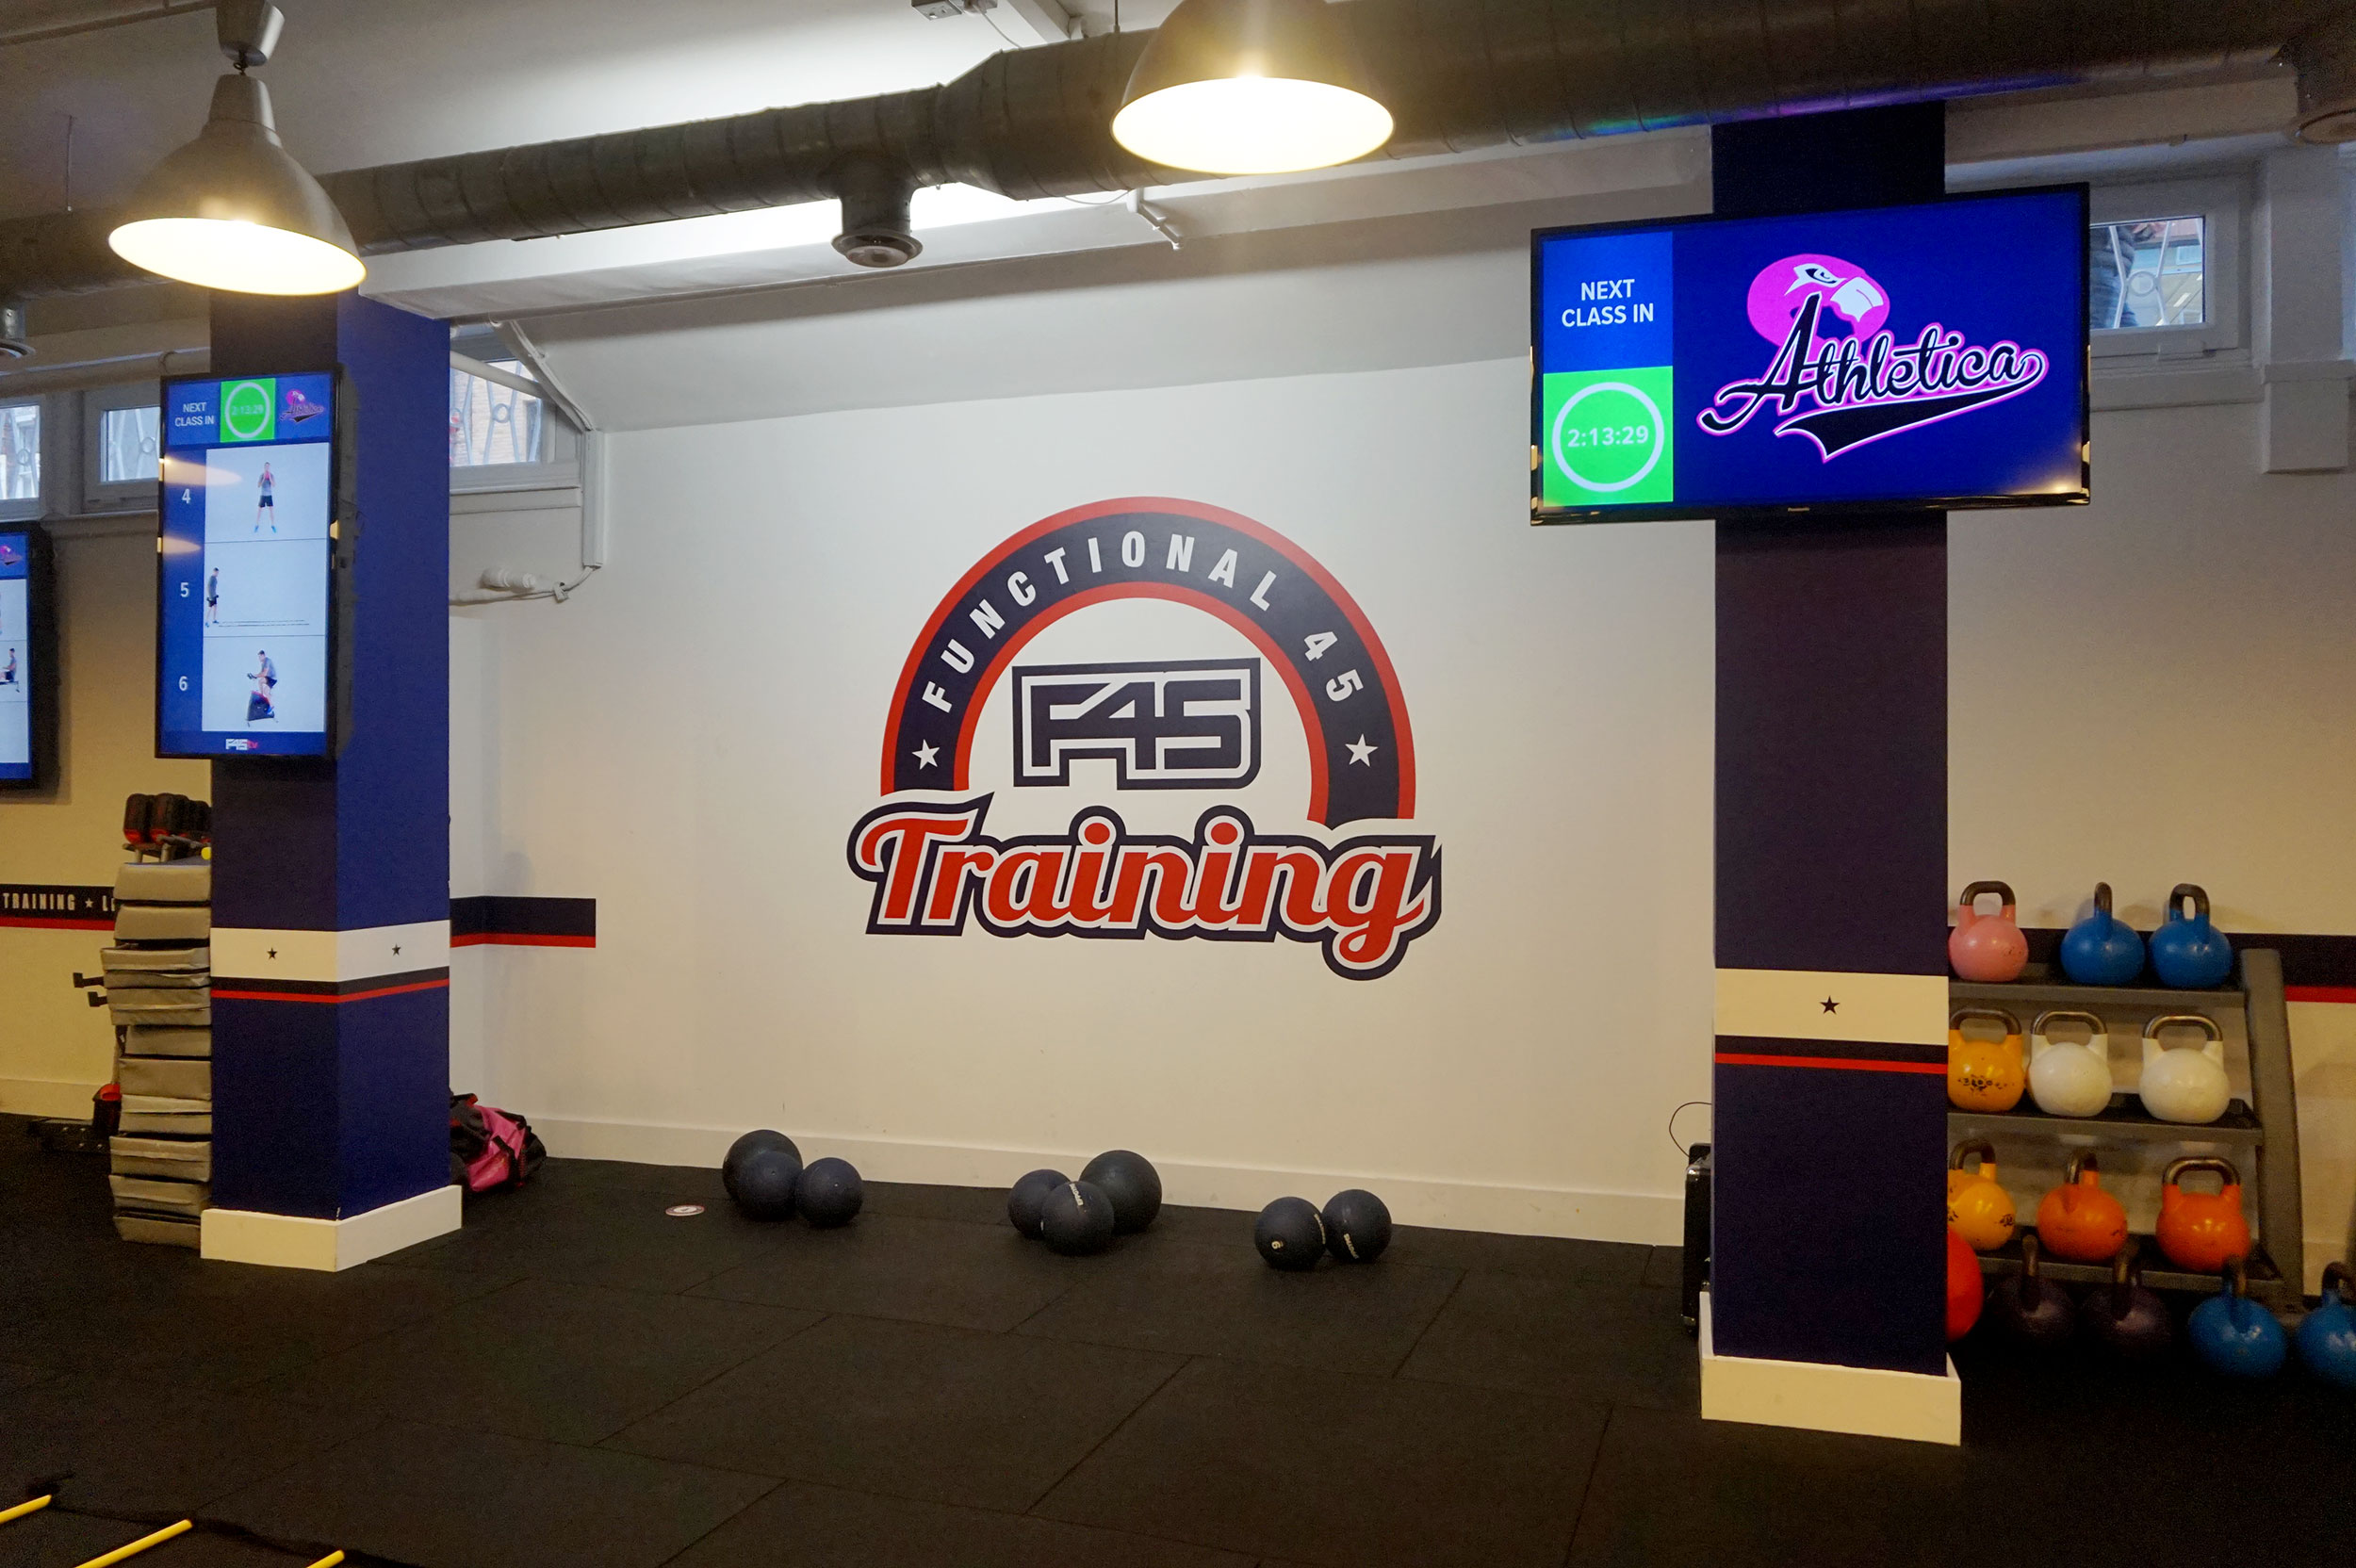 UDOS-CHOICE-F45-LONDON-BRIDGE-BLOGGERS-EVENT-1.jpg